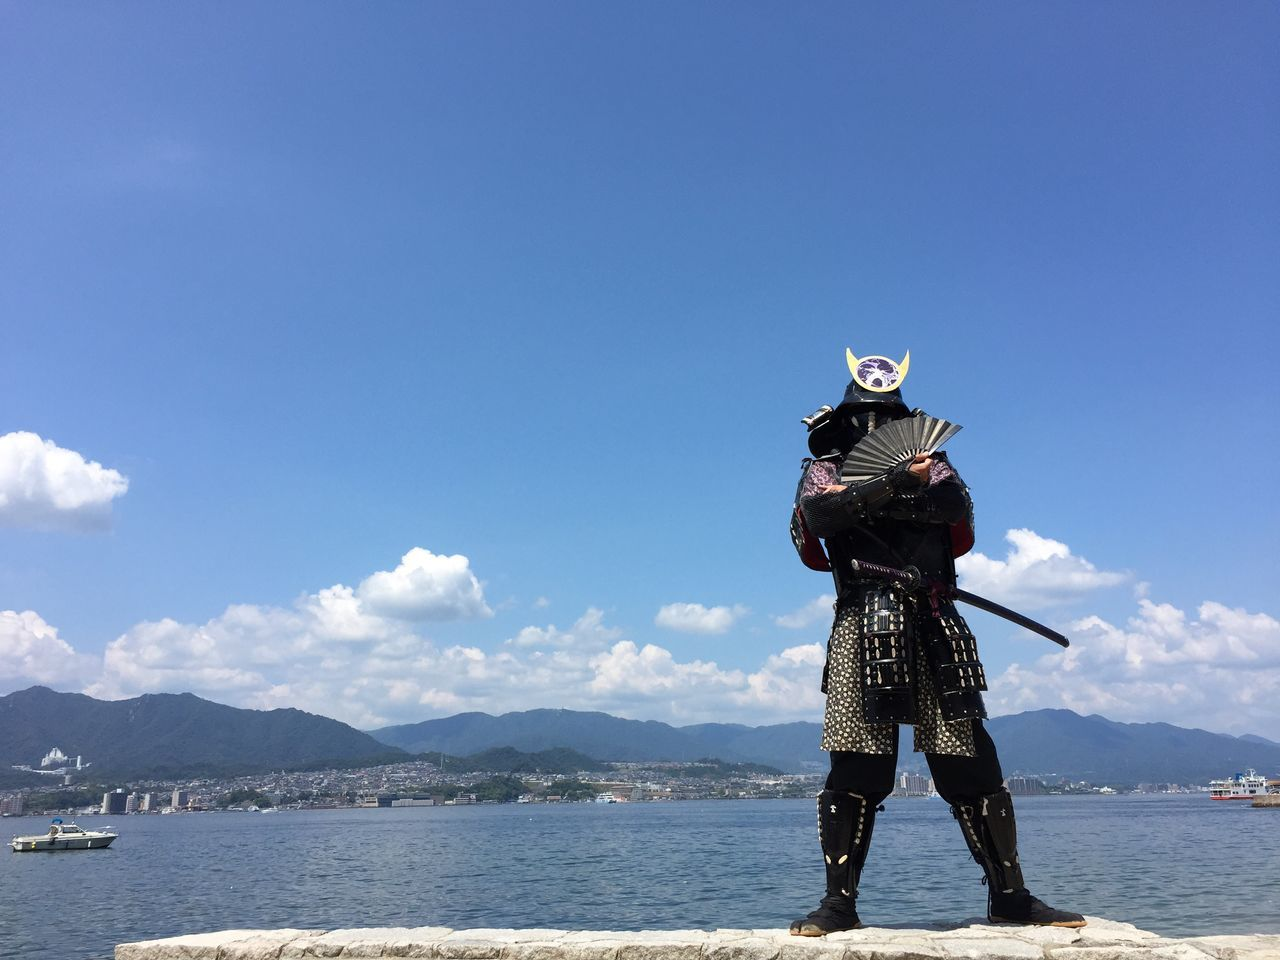 Japan Samurai Hiroshima Miyajima Introducing Culture Of Japan Which Must Be Left To The Future…… 未来に残す日本の文化